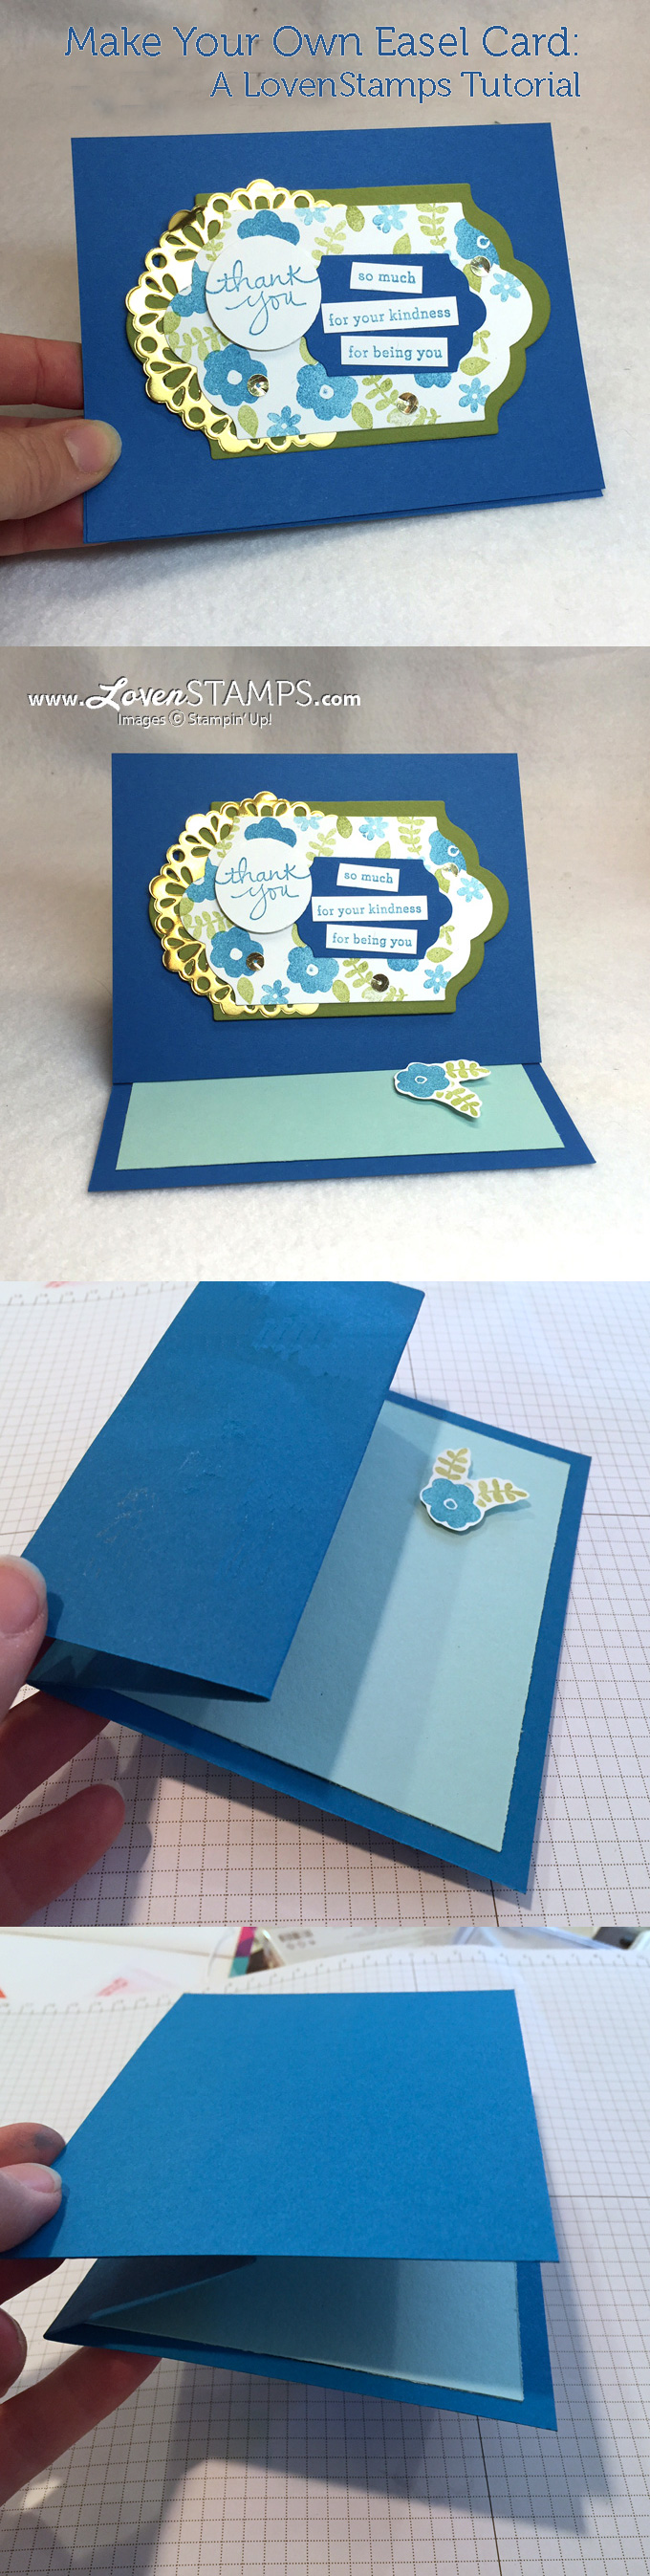 Video Tutorial: How to make an easel card | LovenStamps with supplies from Stampin' Up!